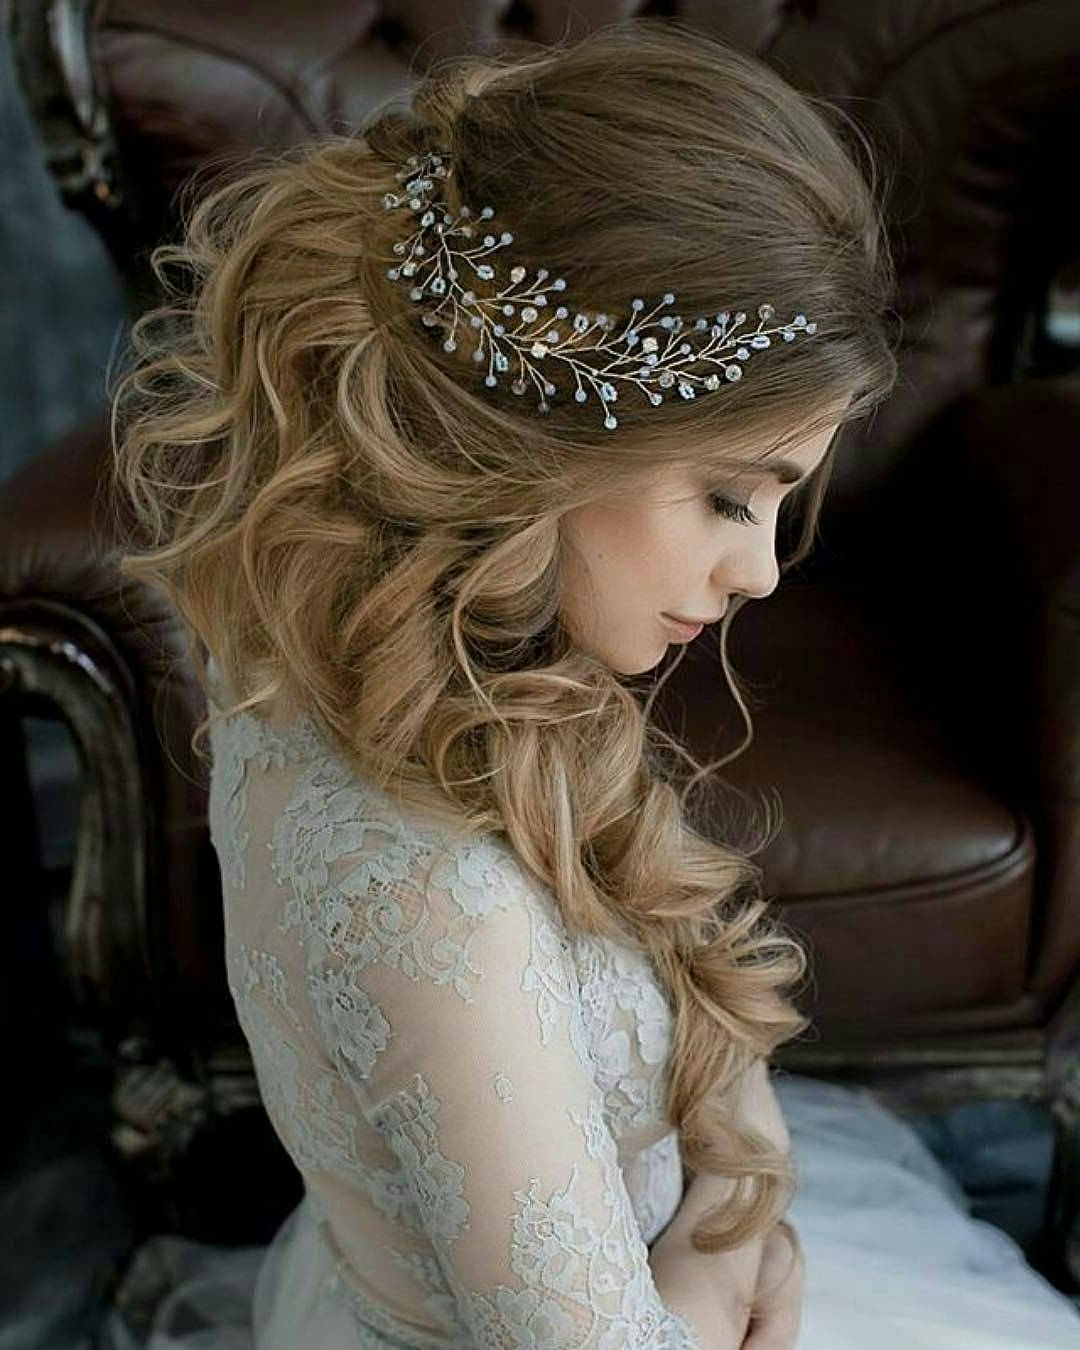 10 Lavish Wedding Hairstyles For Long Hair – Wedding Hairstyle Ideas Regarding Widely Used Wedding Updos With Bow Design (View 2 of 20)